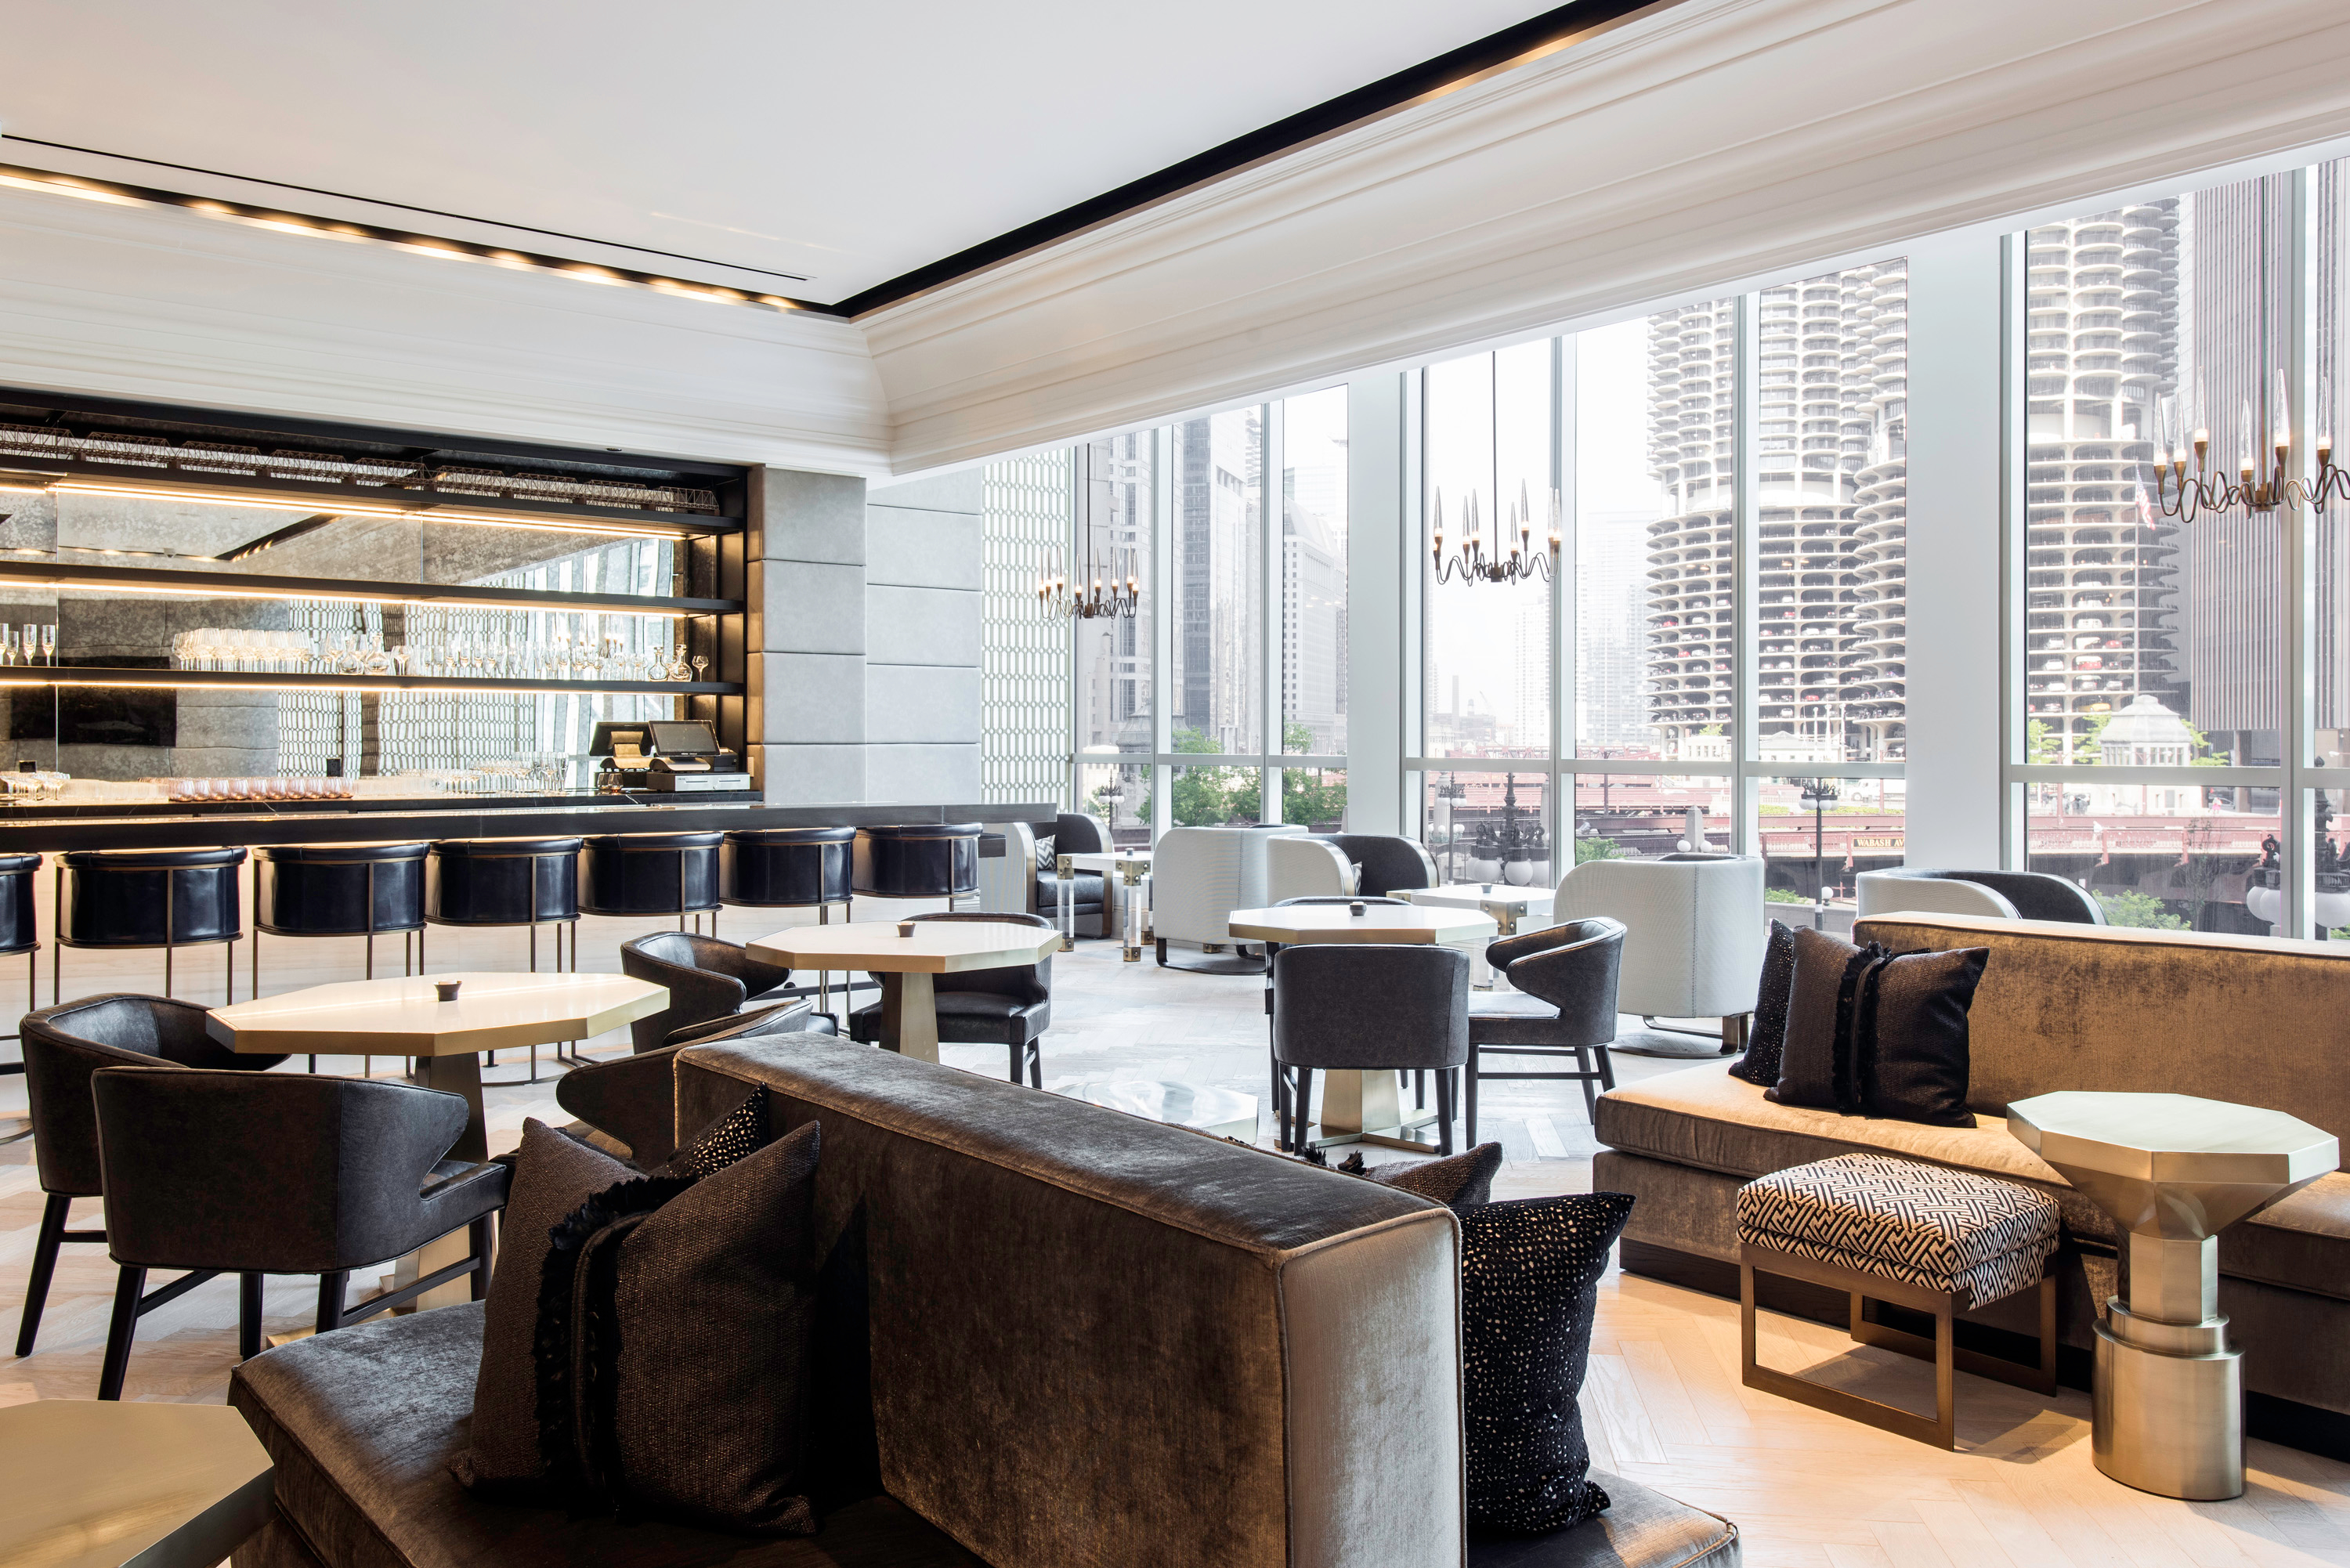 LondonHouse Chicago, Curio Collection by Hilton image 5